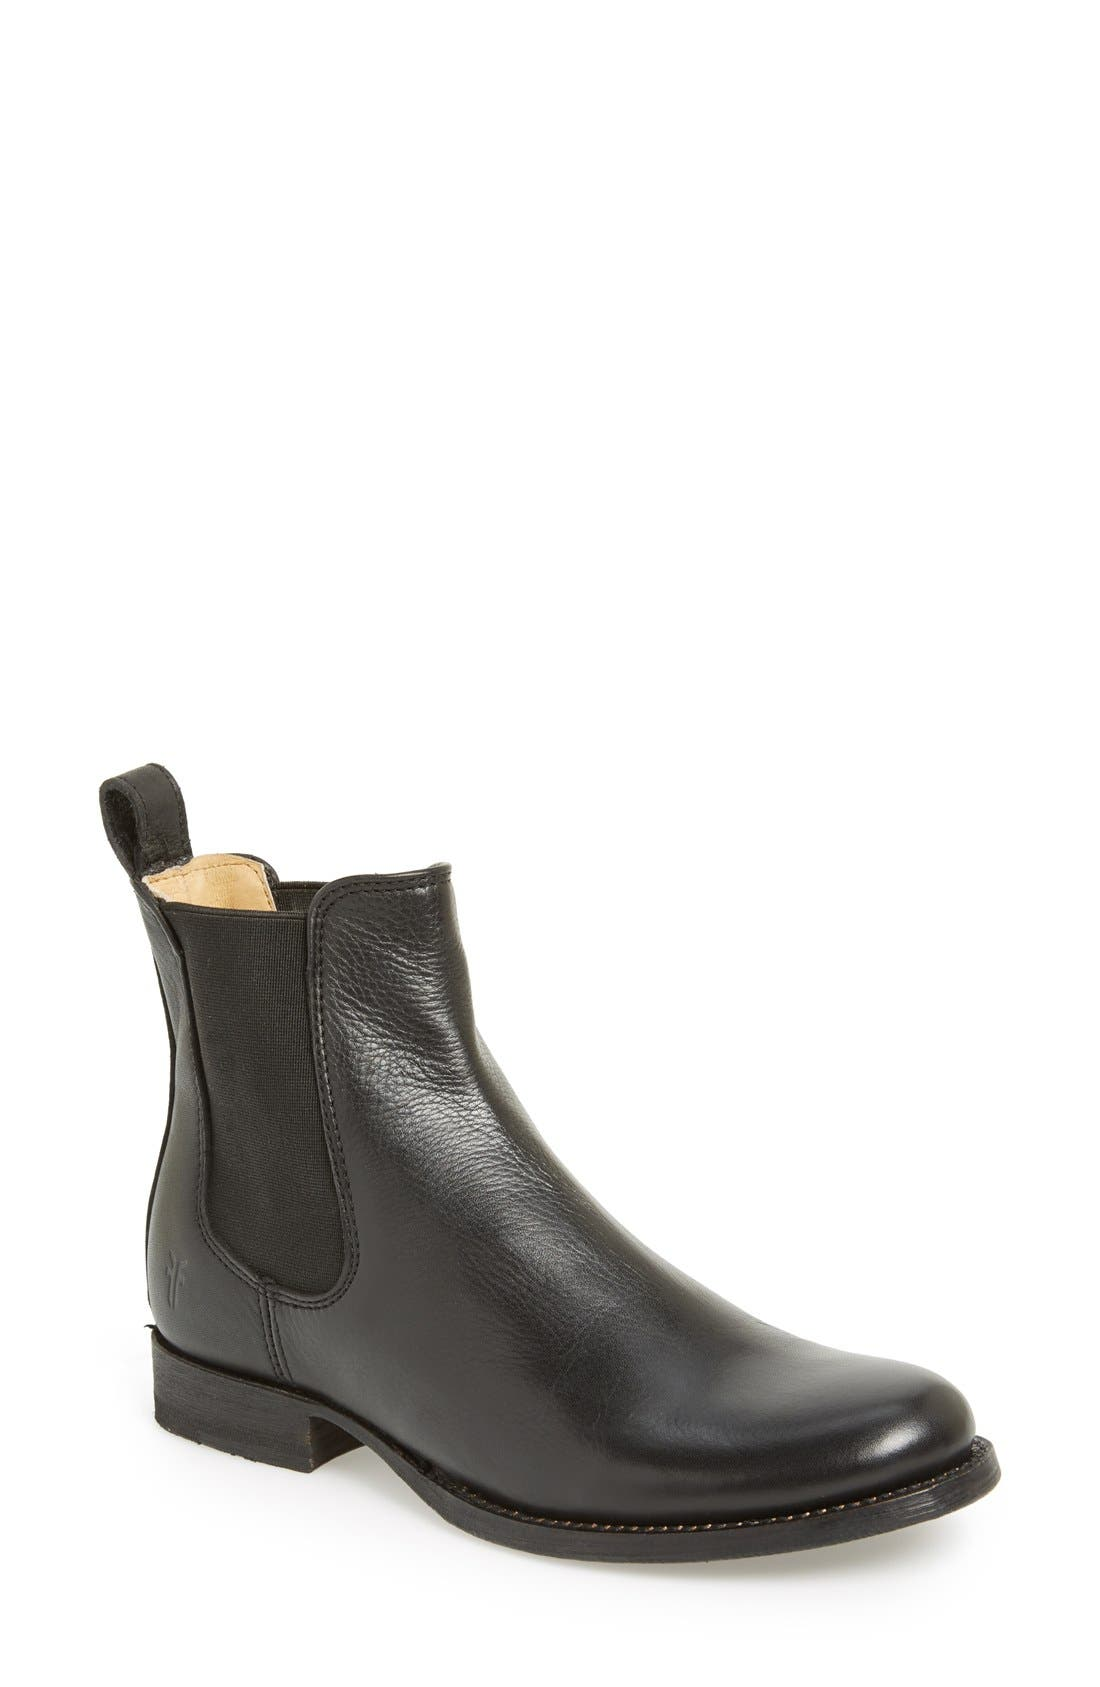 Alternate Image 1 Selected - Frye 'Erin' Leather Chelsea Boot (Women)